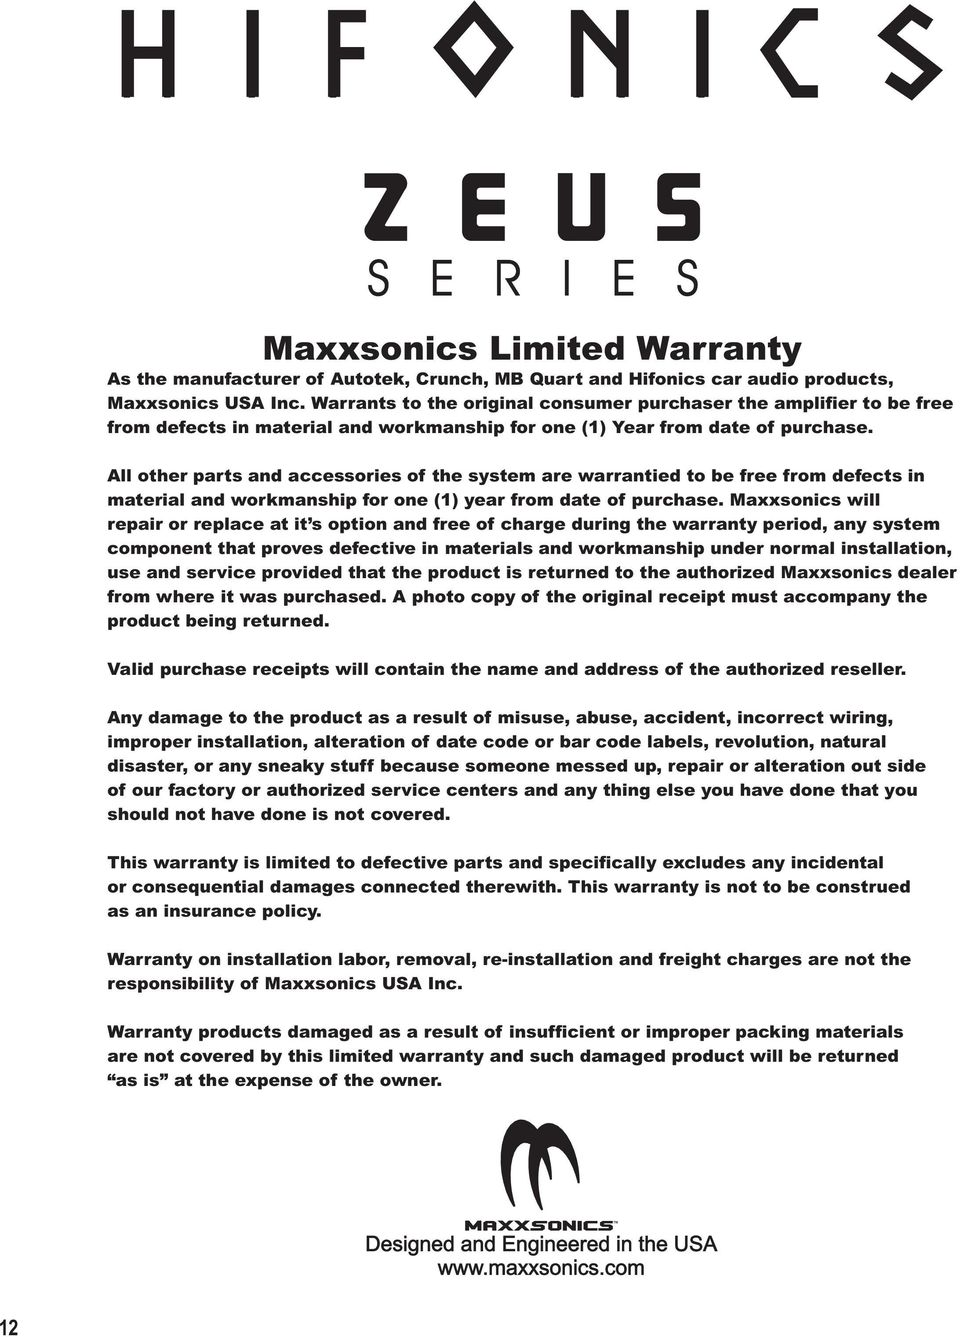 Zeus 25th Anniversary Edition High Performance Amplifiers Pdf Hifonics Amp Wiring Diagram All Other Parts And Accessories Of The System Are Warrantied To Be Free From Defects In